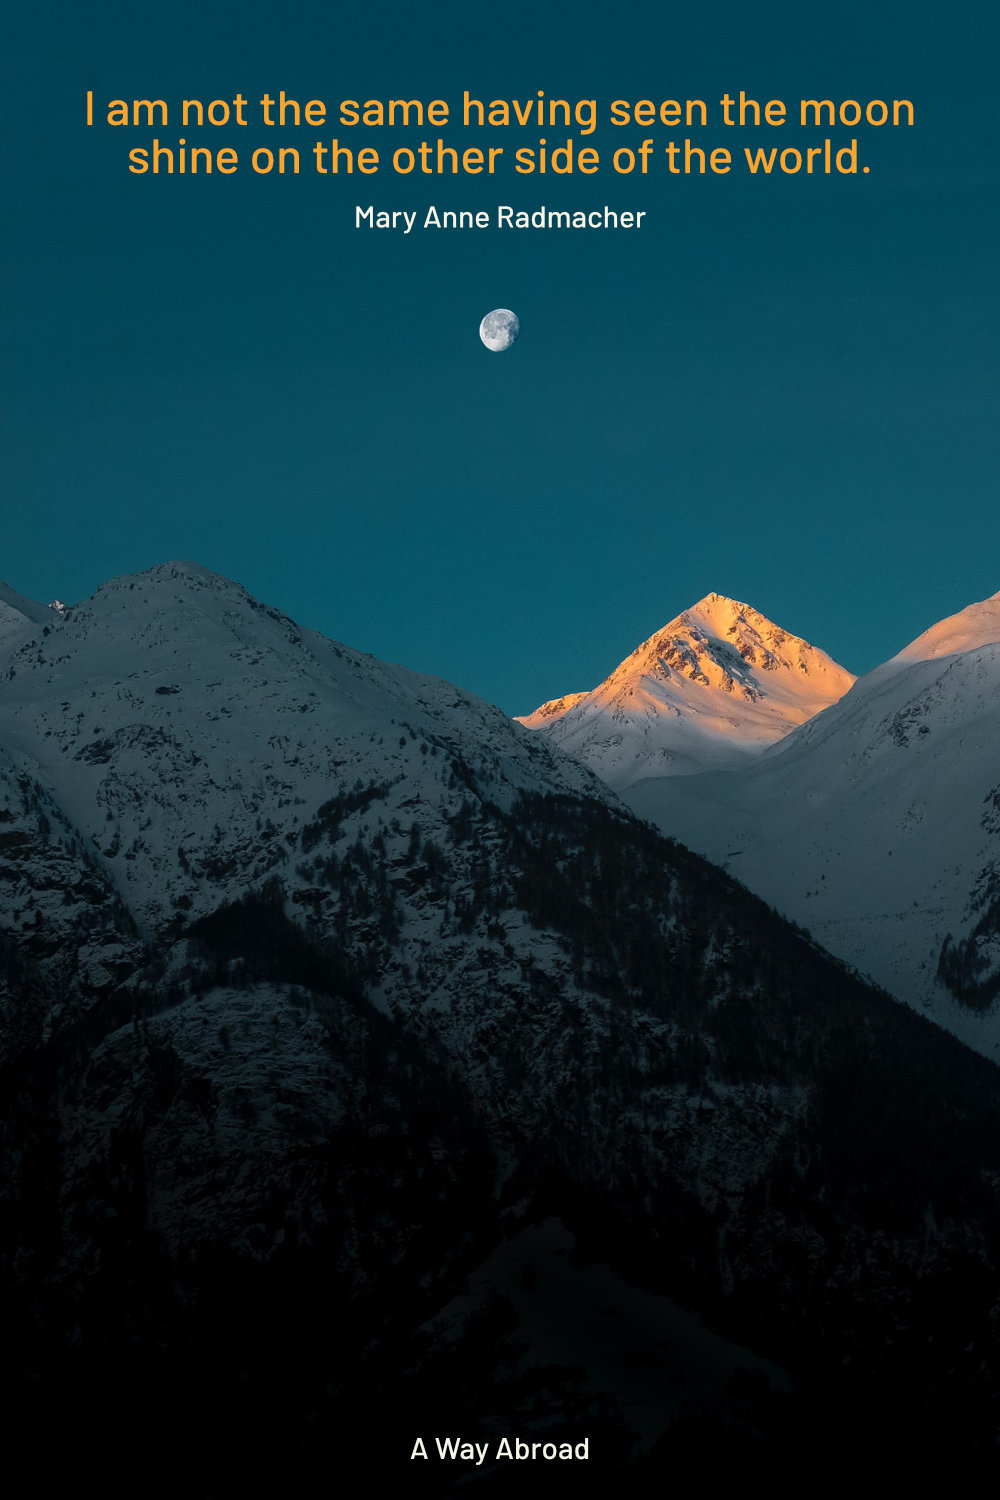 mountains at sunset with the moon already visible above mountain range